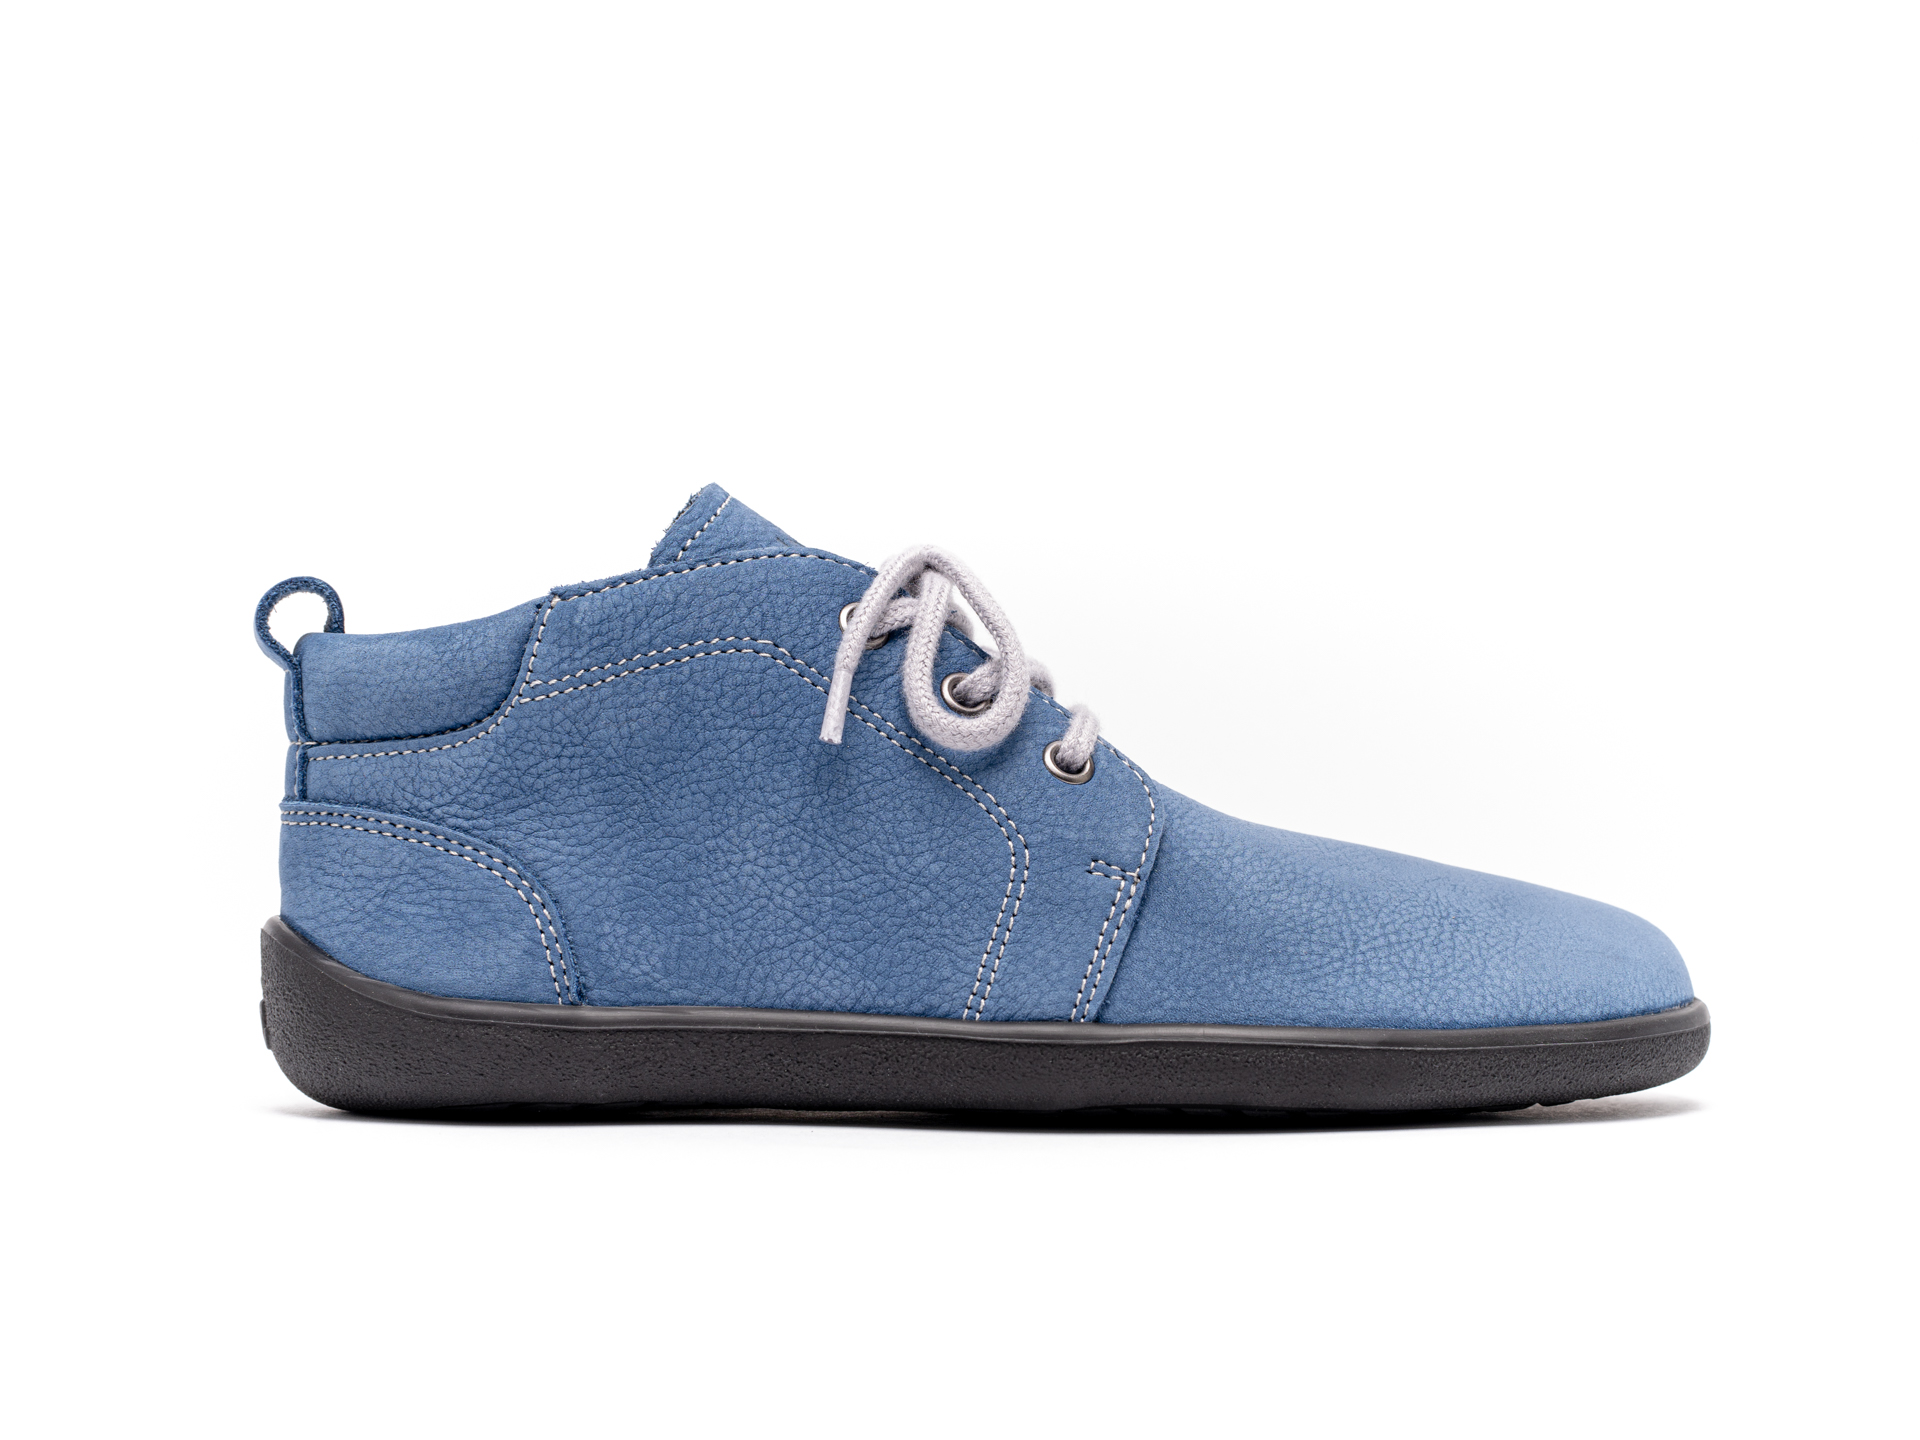 Barefoot Shoes - Be Lenka All-year - Icon - Deep Blue 39